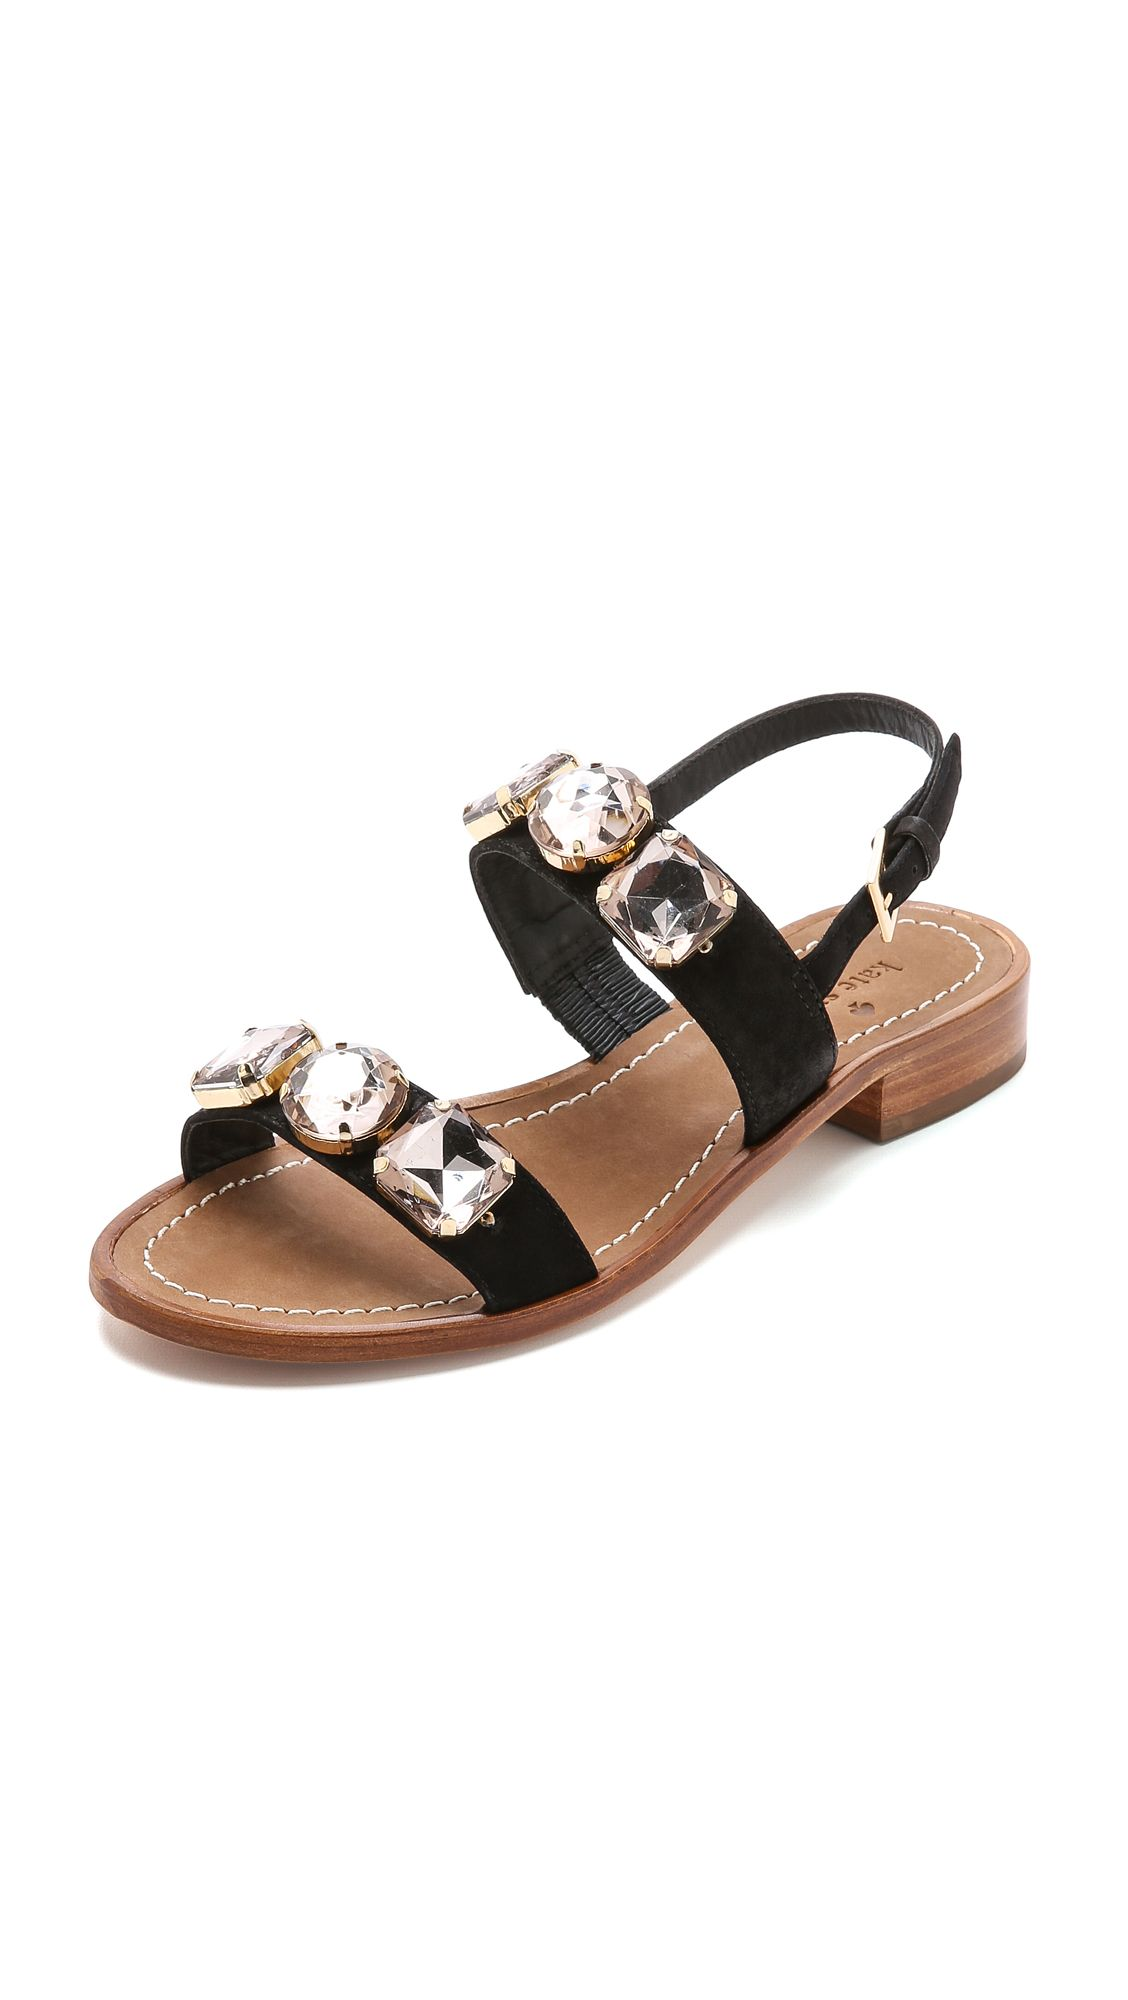 buy cheap nicekicks real for sale Kate Spade New York Patent Leather Flat Sandals very cheap sale online j8UBu1